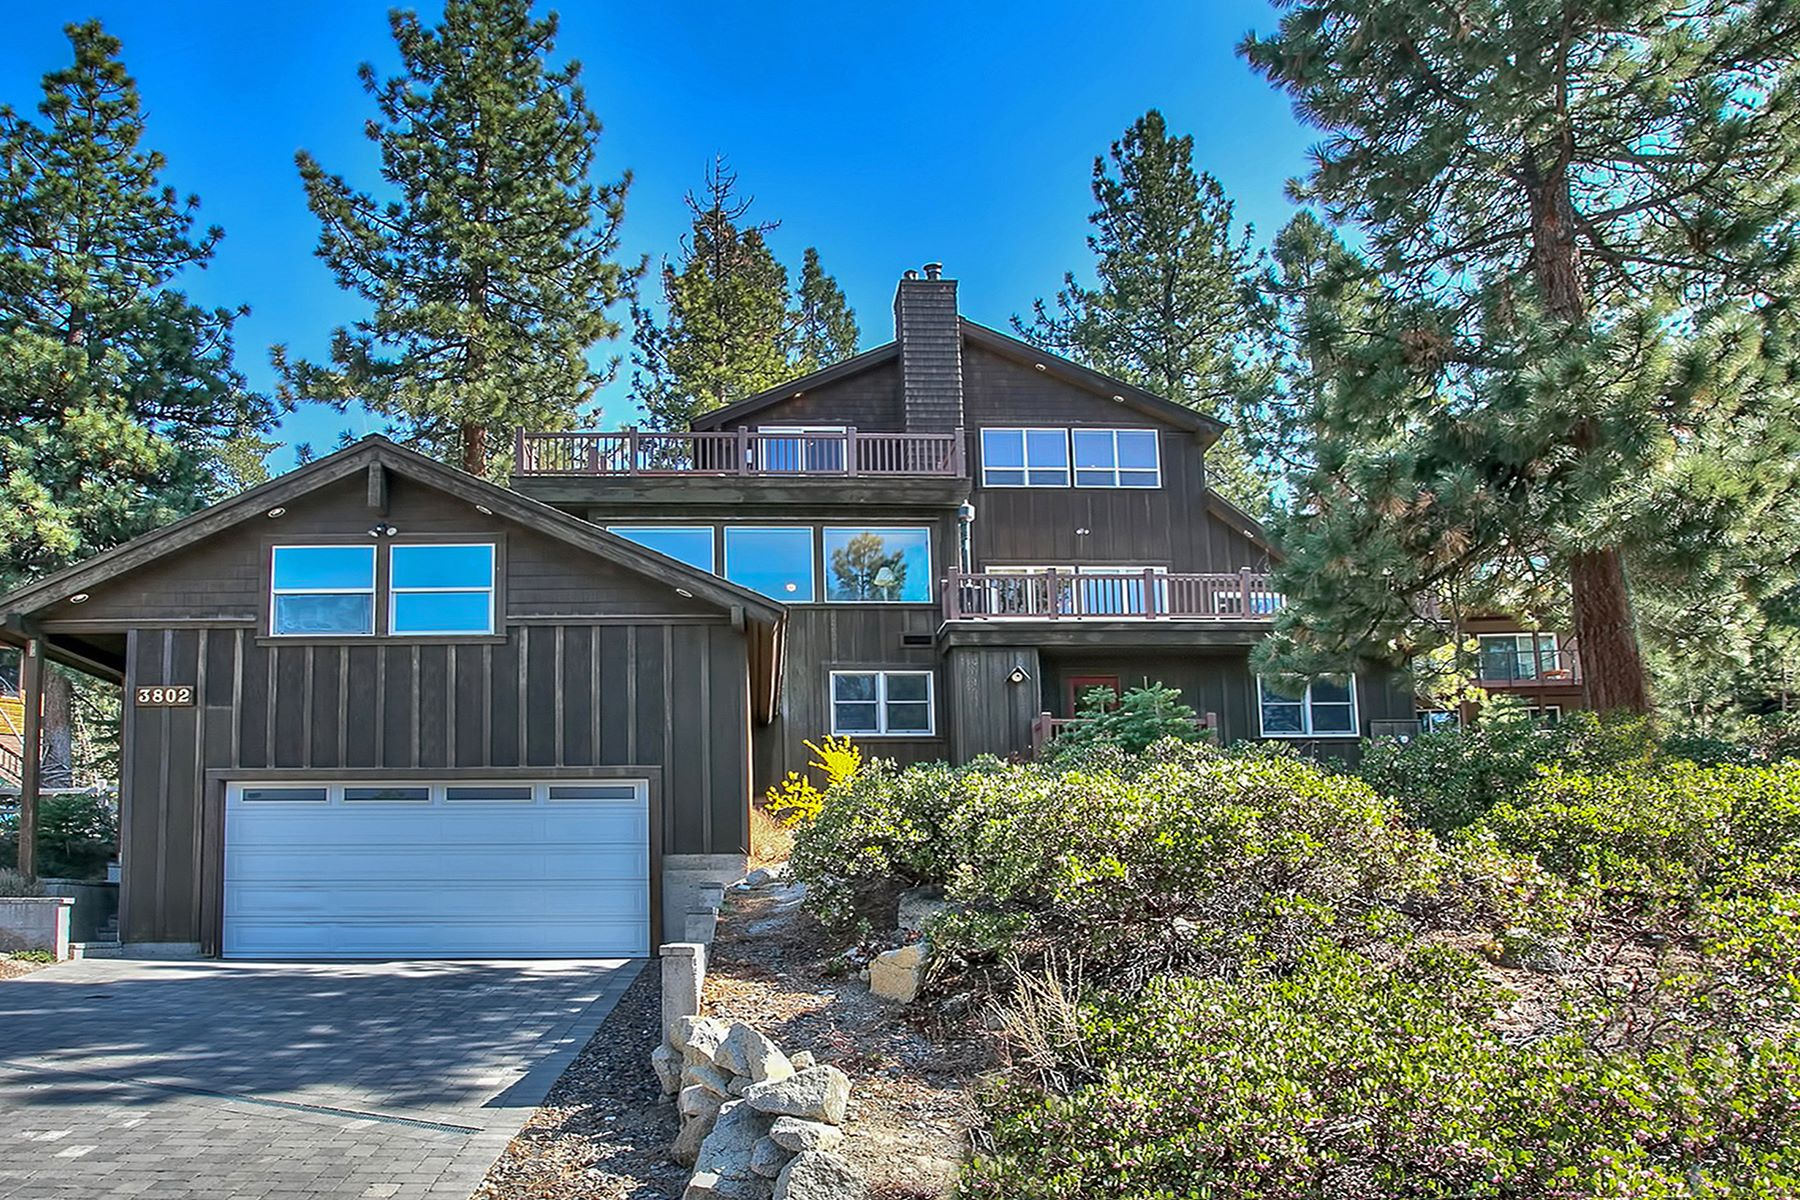 Property por un Venta en 3802 Lucinda Court 3802 Lucinda Court South Lake Tahoe, California 96150 Estados Unidos